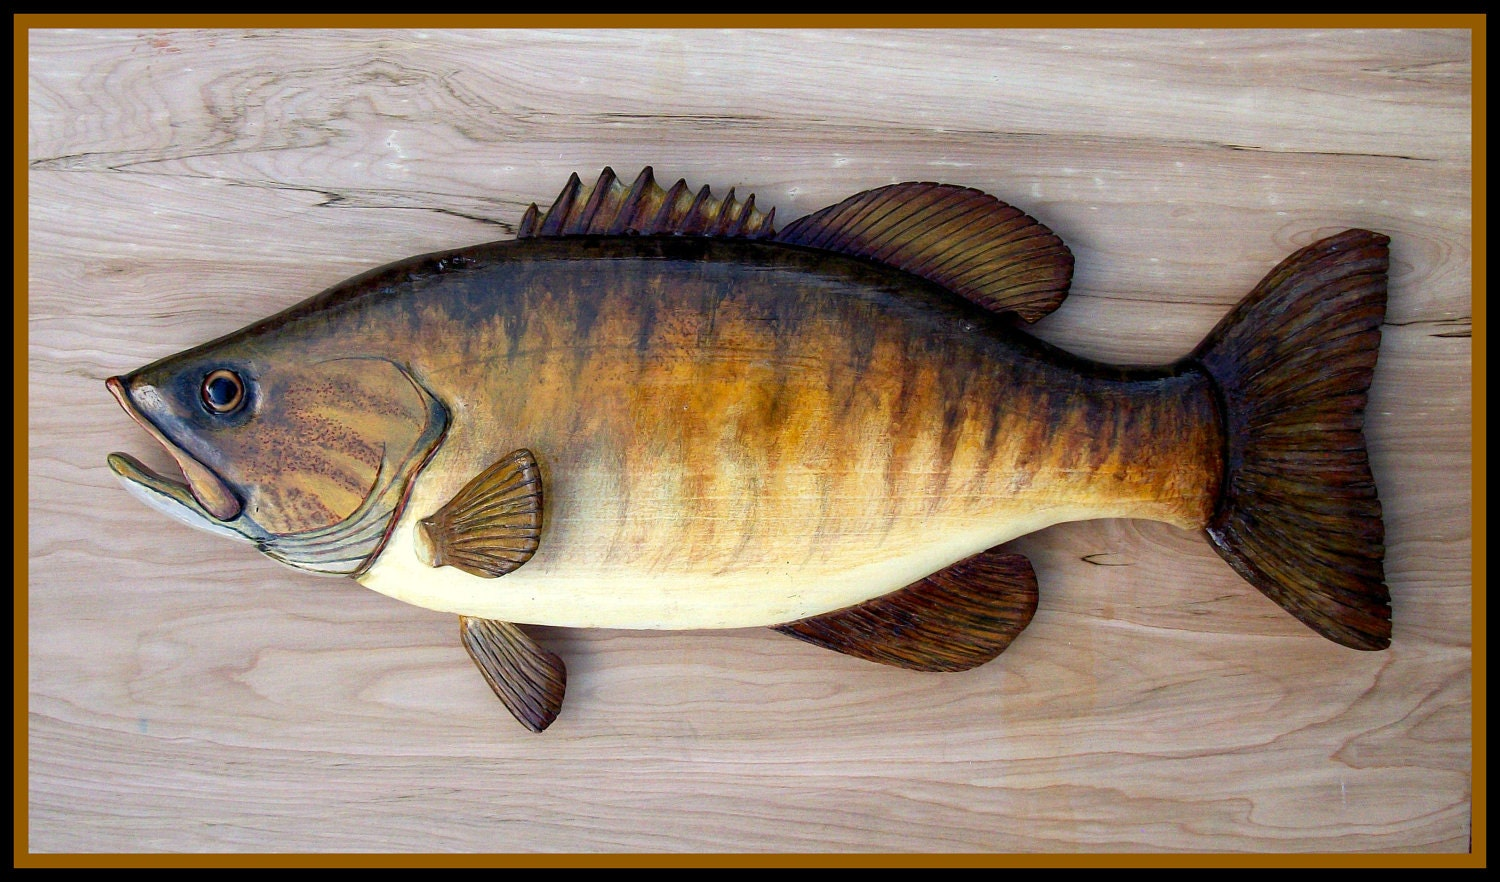 Smallmouth bass wood carving folk art fish wall mount